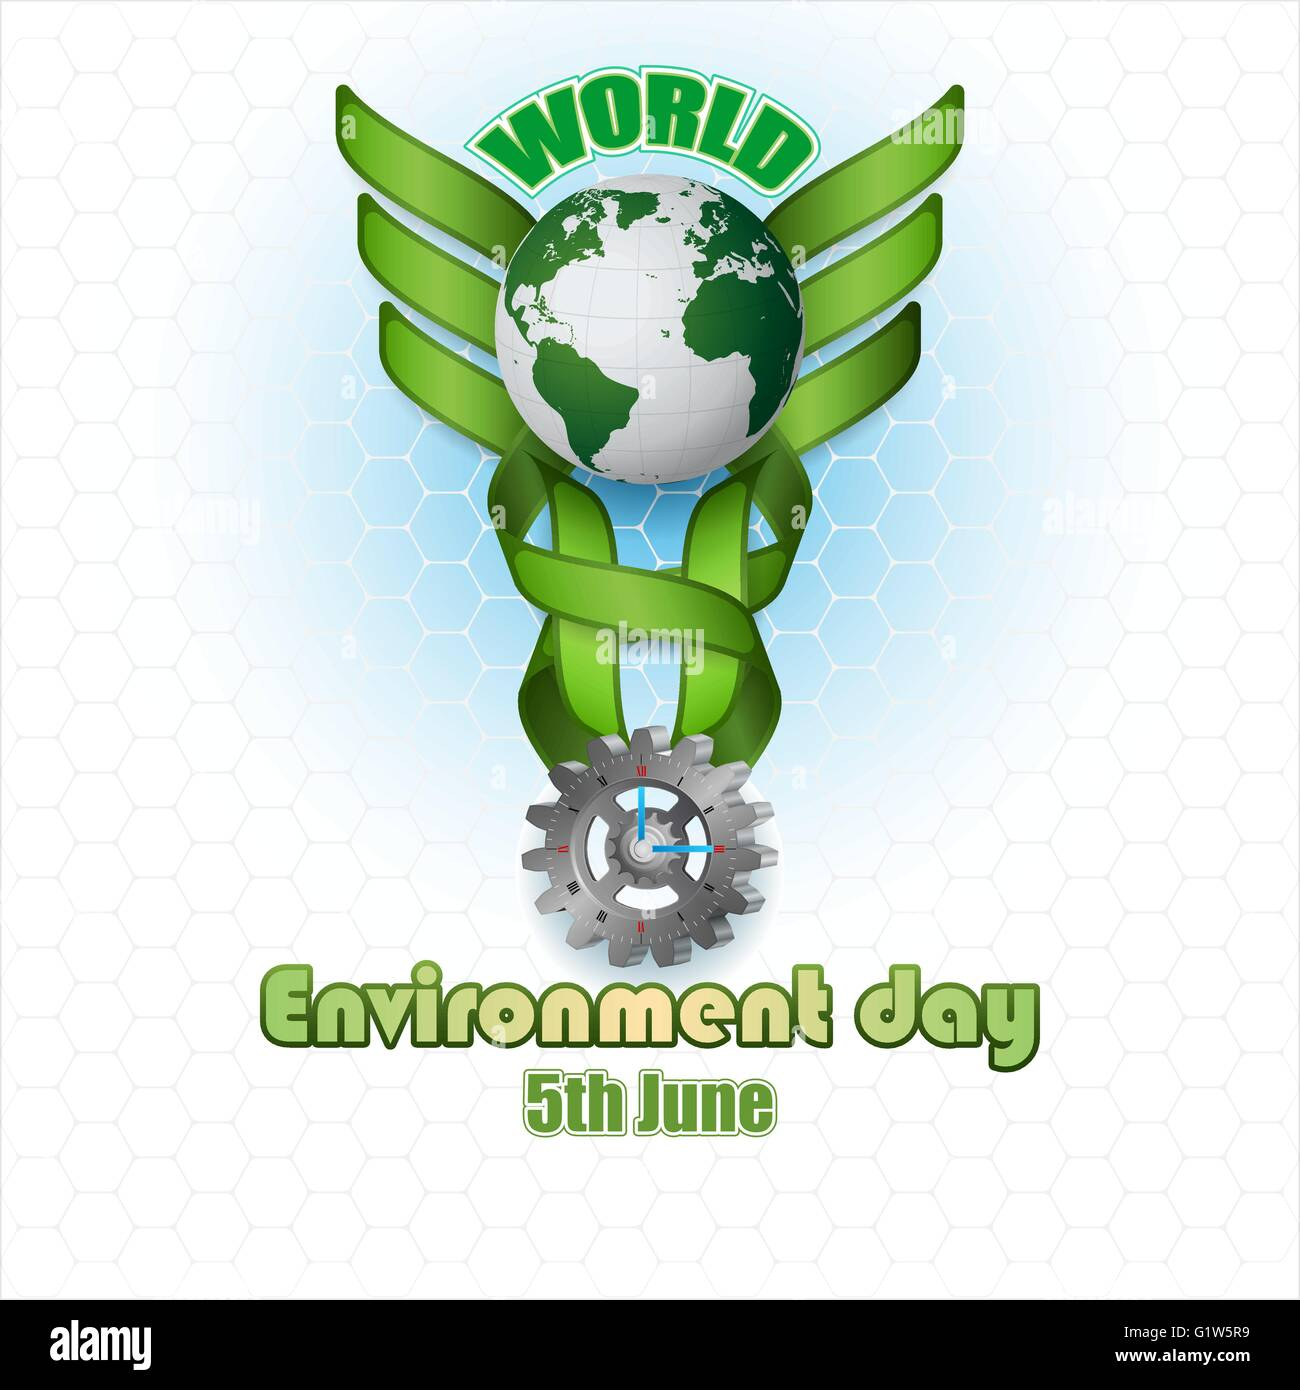 Abstract Design Background With World Environment Day Celebration